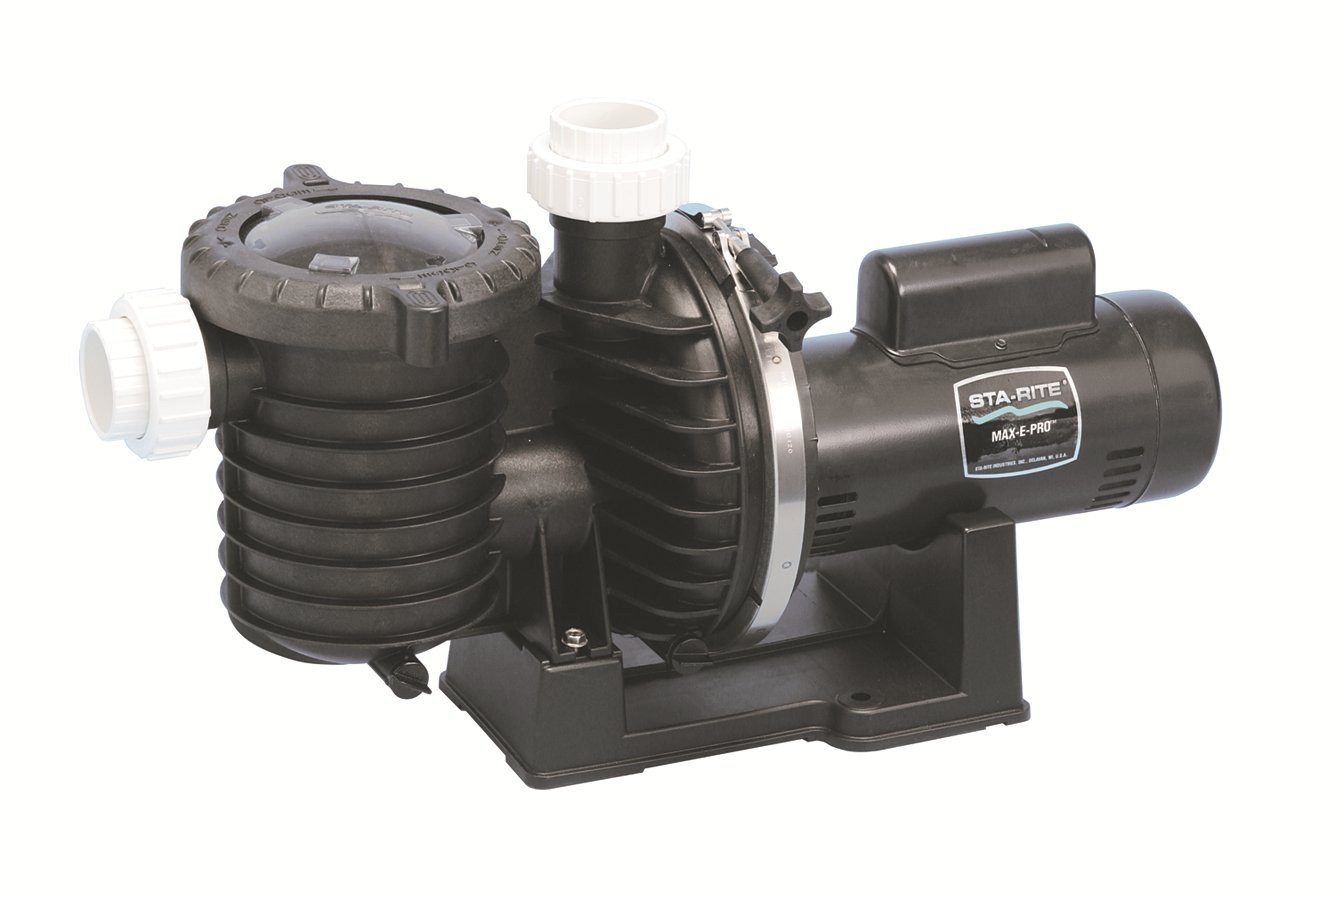 Pentair 5P6R6F-211 Max-E-Pro Energy Efficient Single Speed Single Phase Pool and Spa Pump, 1-1/2 HP, 50-Hertz by Pentair